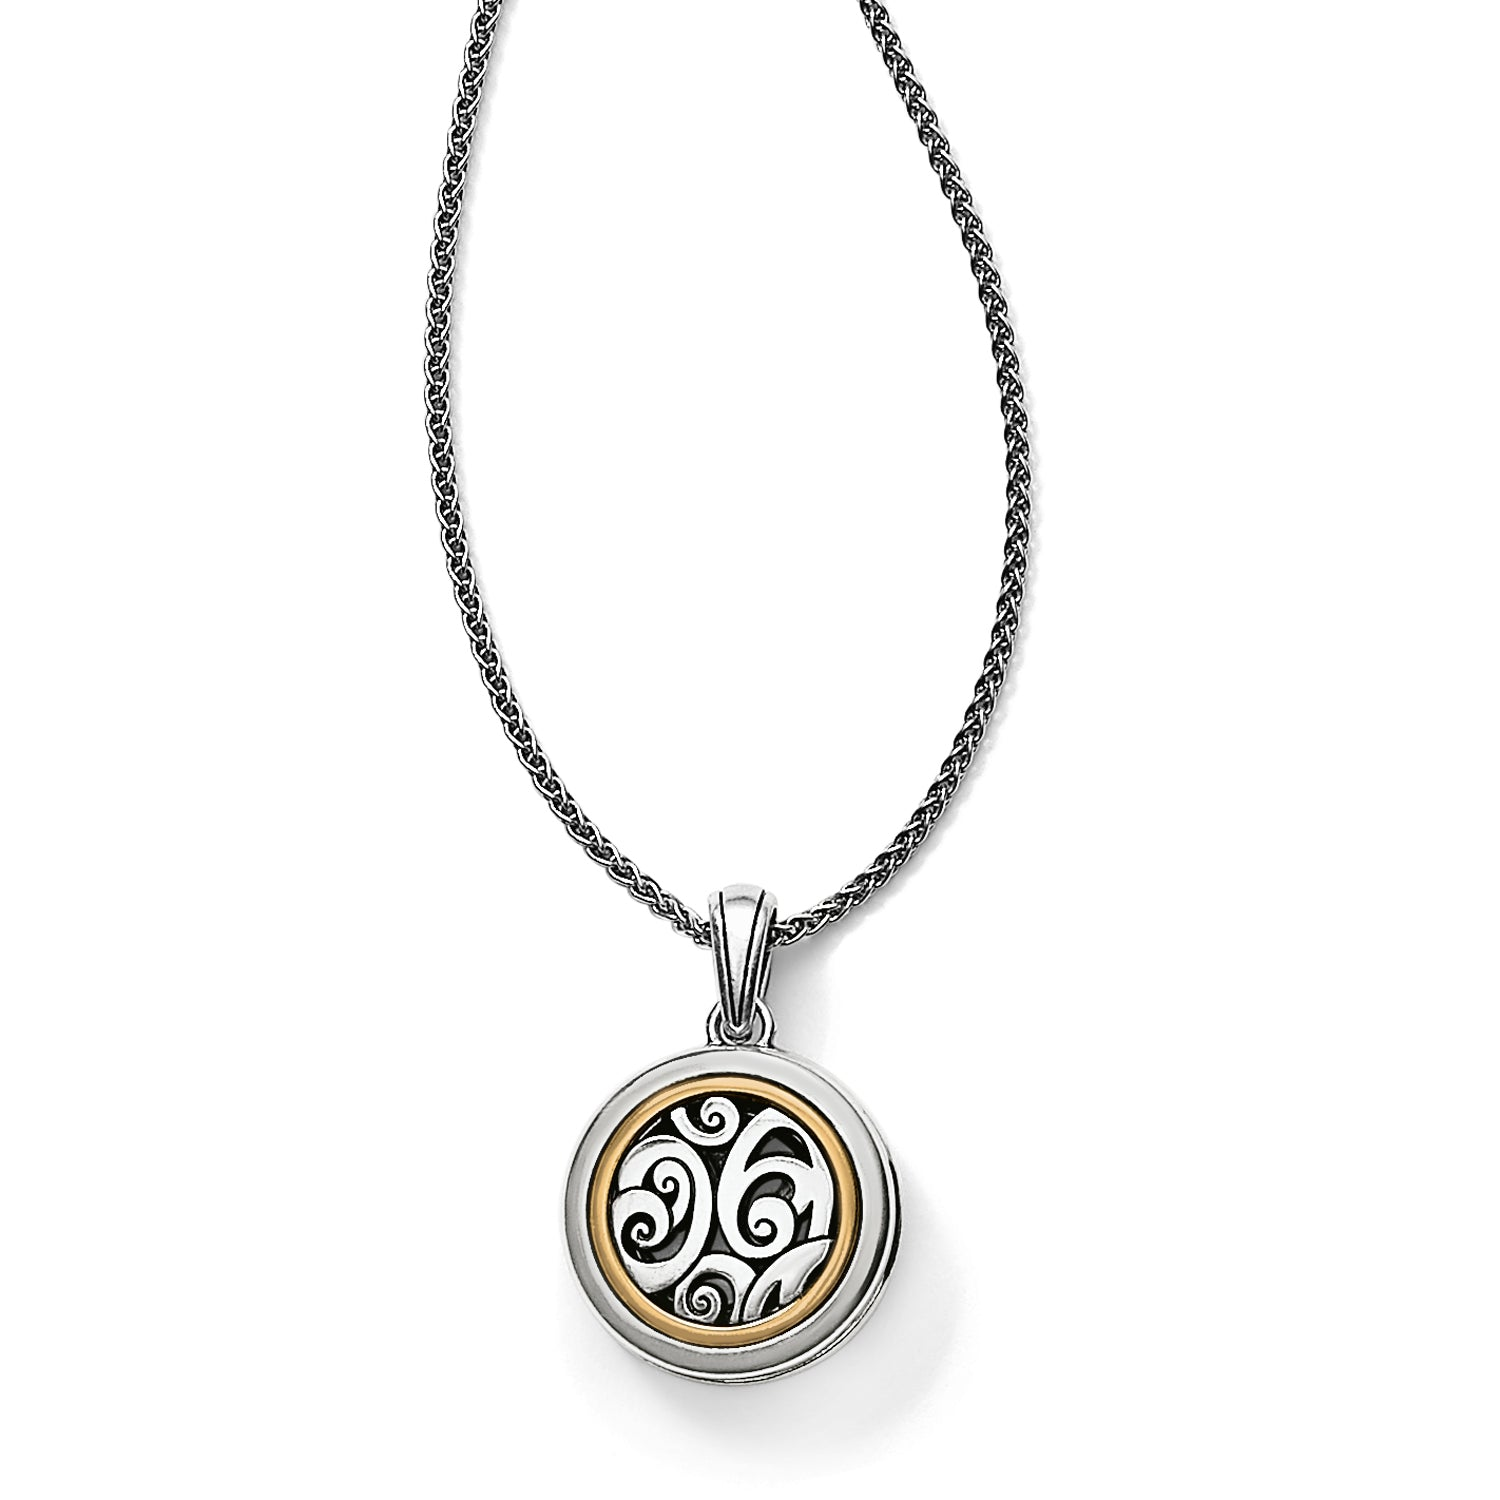 Spin Master Convertible Locket Necklace